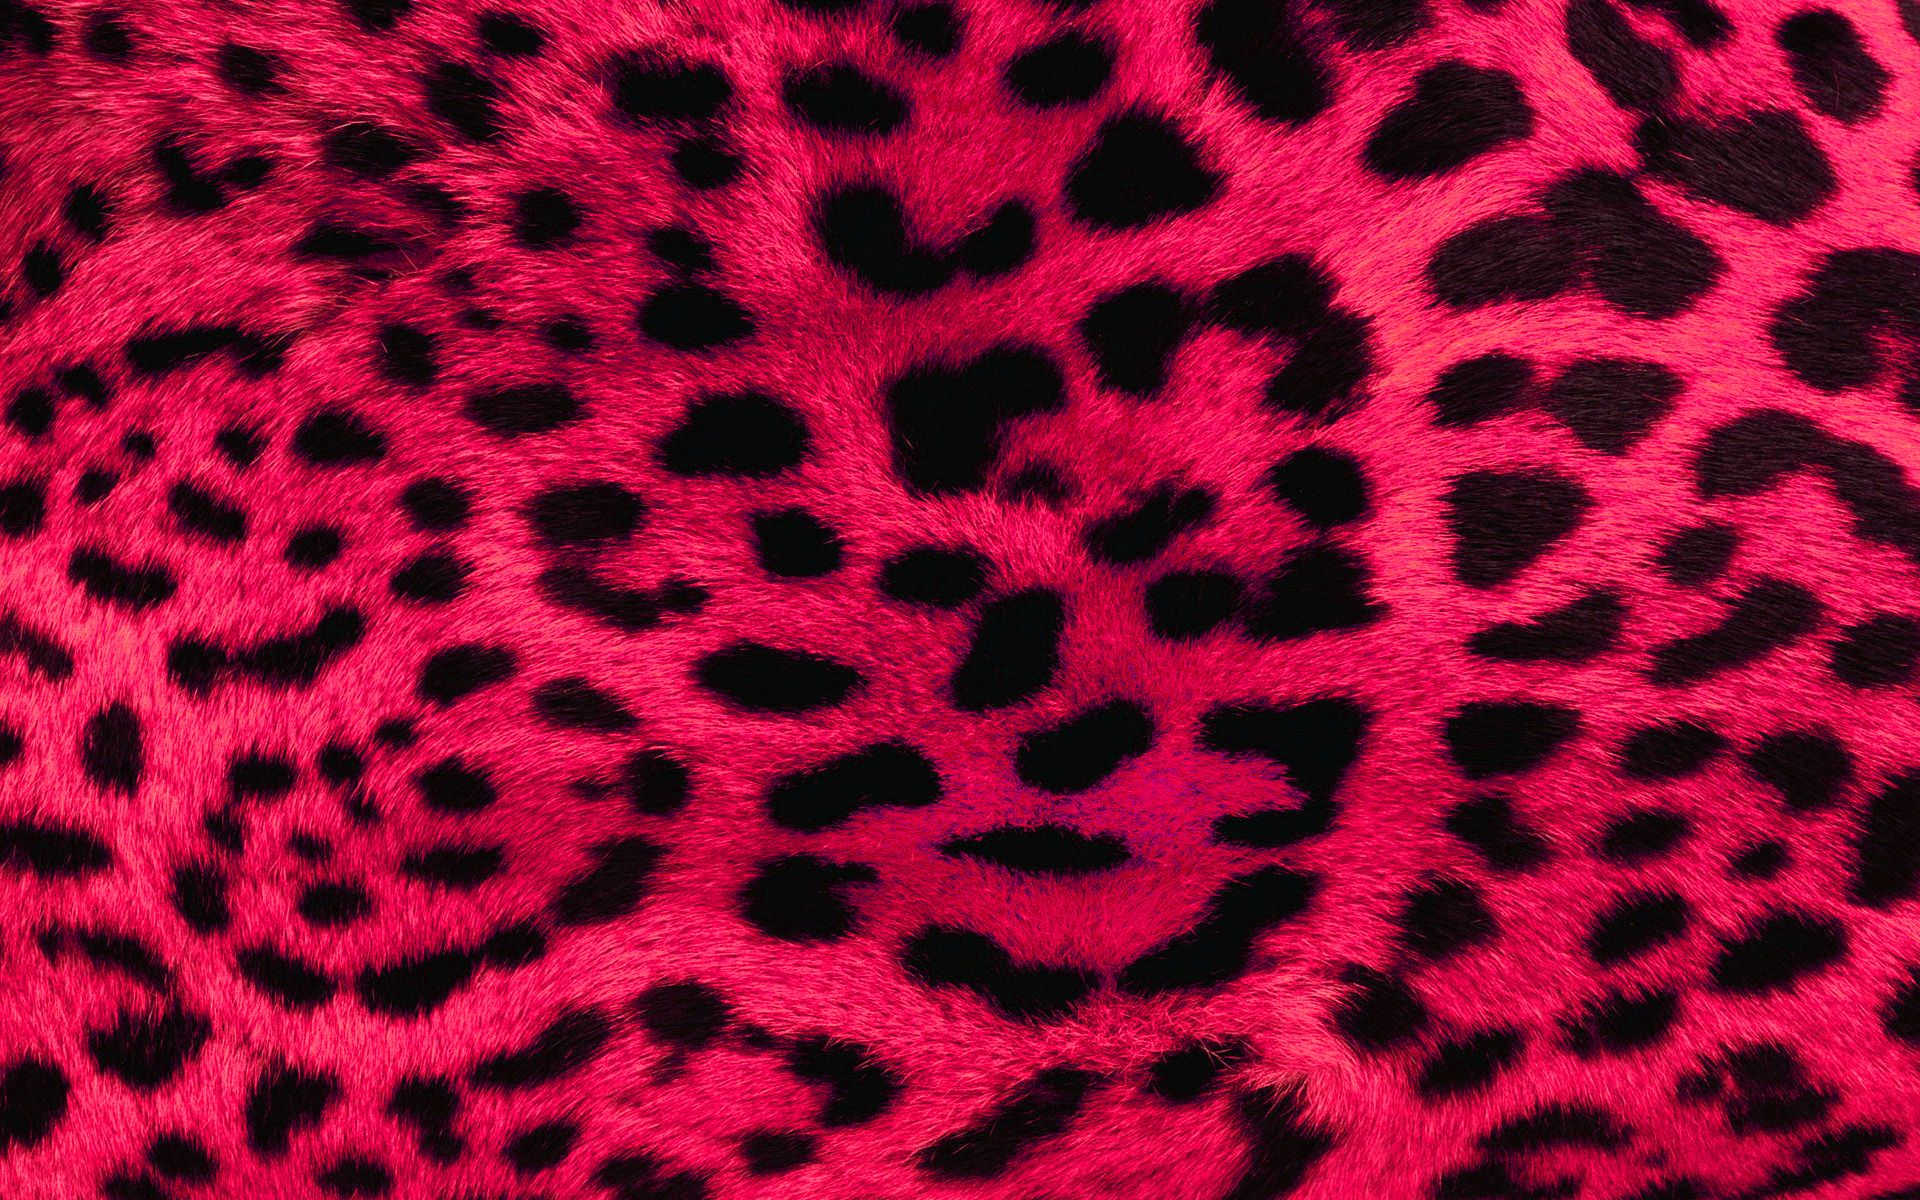 Wallsave Manager Wallpapers Leopard Print Wallpaper Pink Leopard Wallpaper Leopard Wallpaper